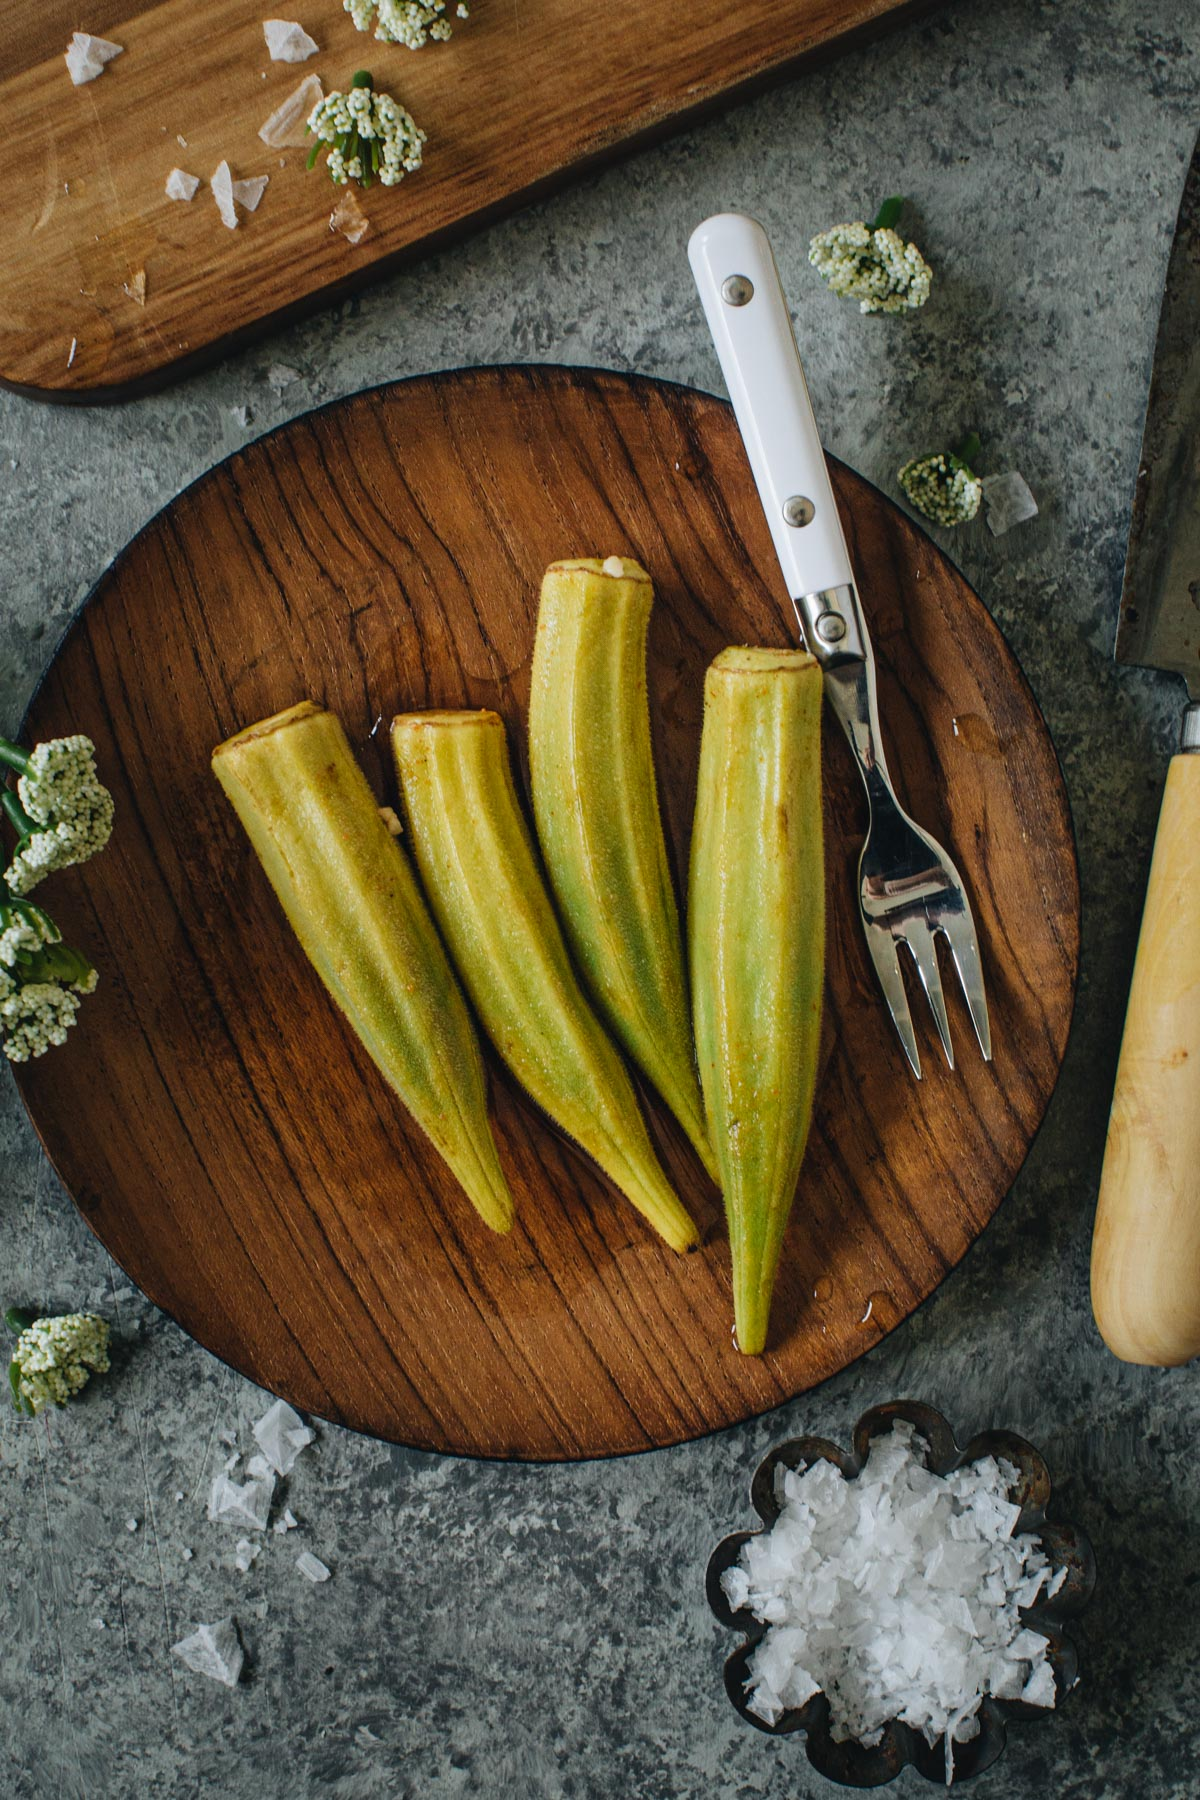 Pickled okra on a wooden plate with a white serving fork.